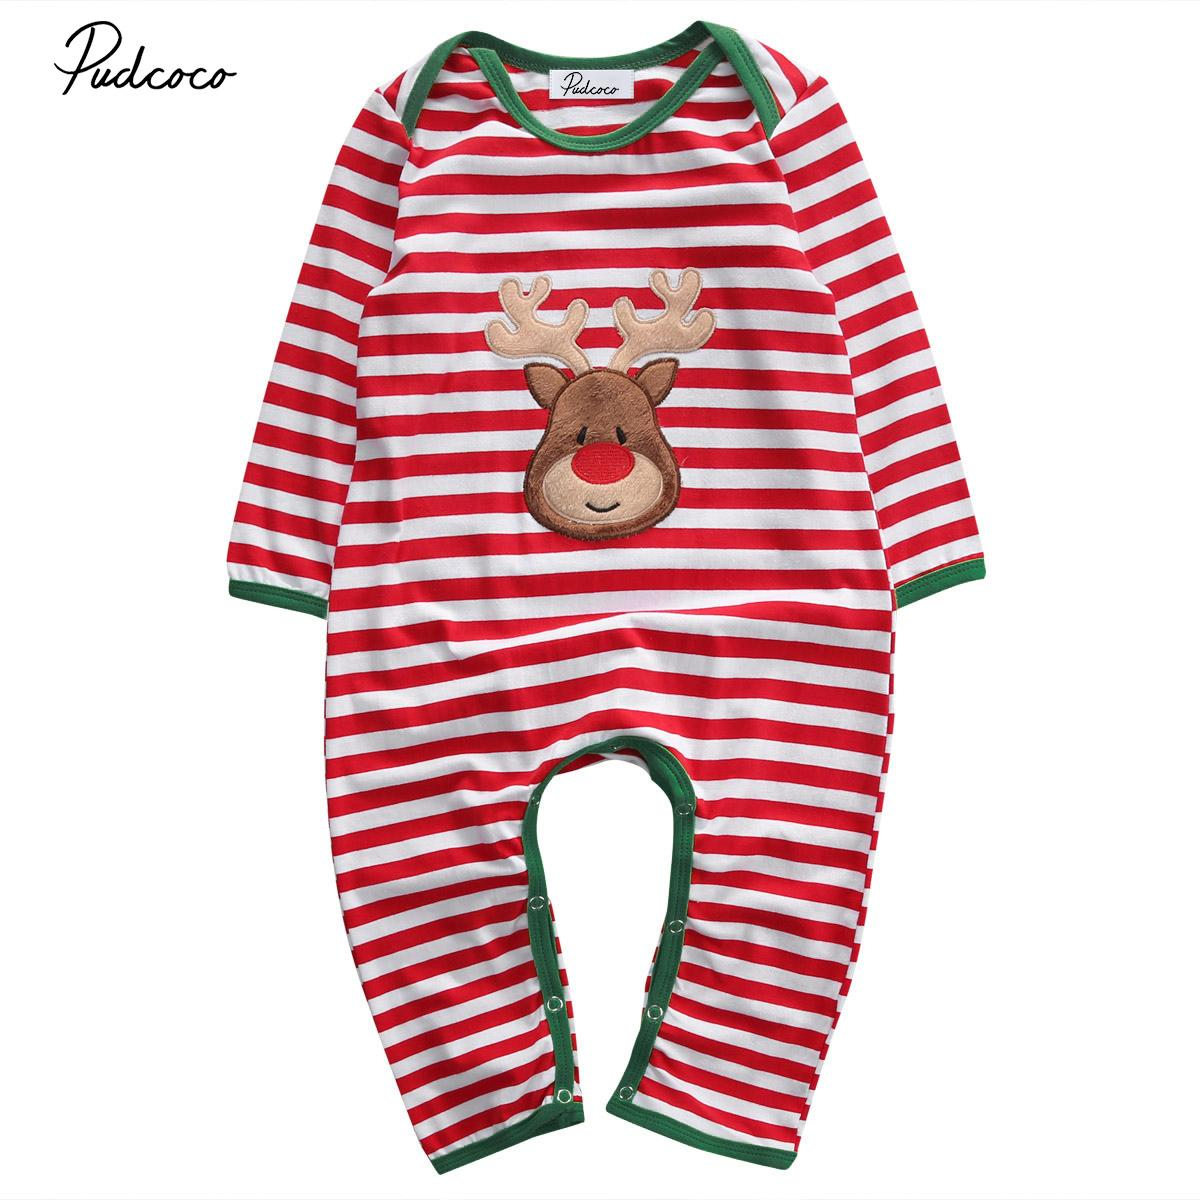 0b62b4ecc 2019 Christmas Baby Romper Pajamas Red Stripes Long Sleeve Newborn ...